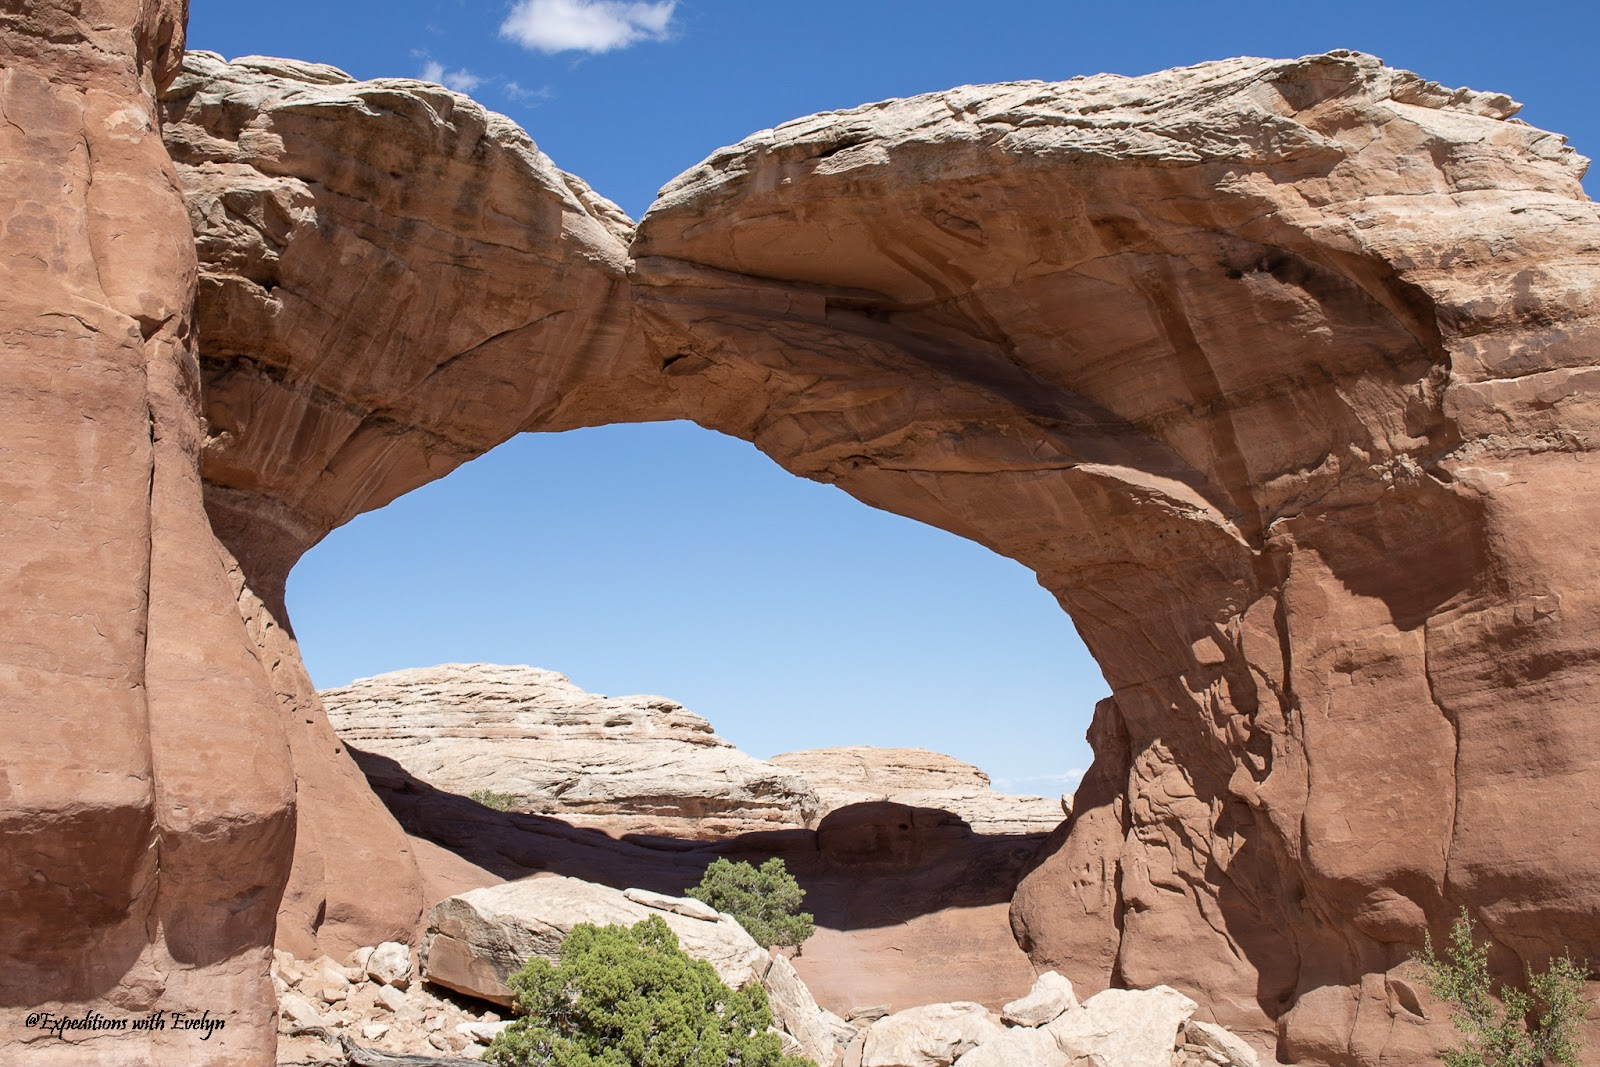 A sandstone arch creates a window to more sandstone rocks behind it.  Greenery dots the foreground.